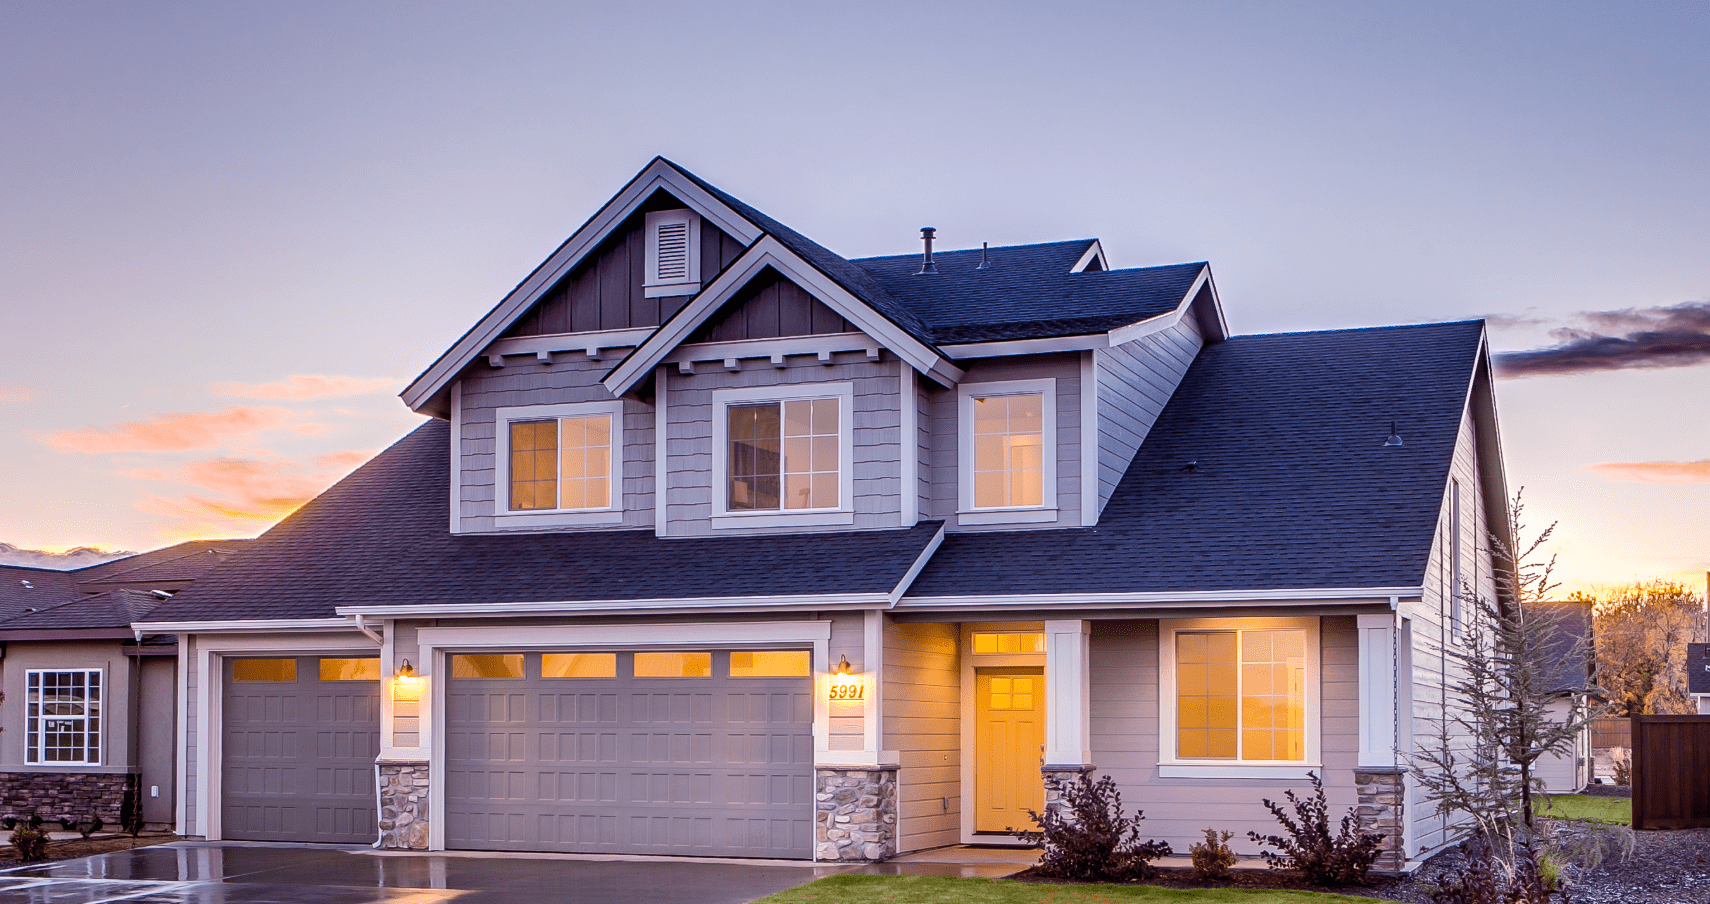 FHA to Reduce the Loan-To-Value (LTV) on Cash-Out Refinance Mortgages